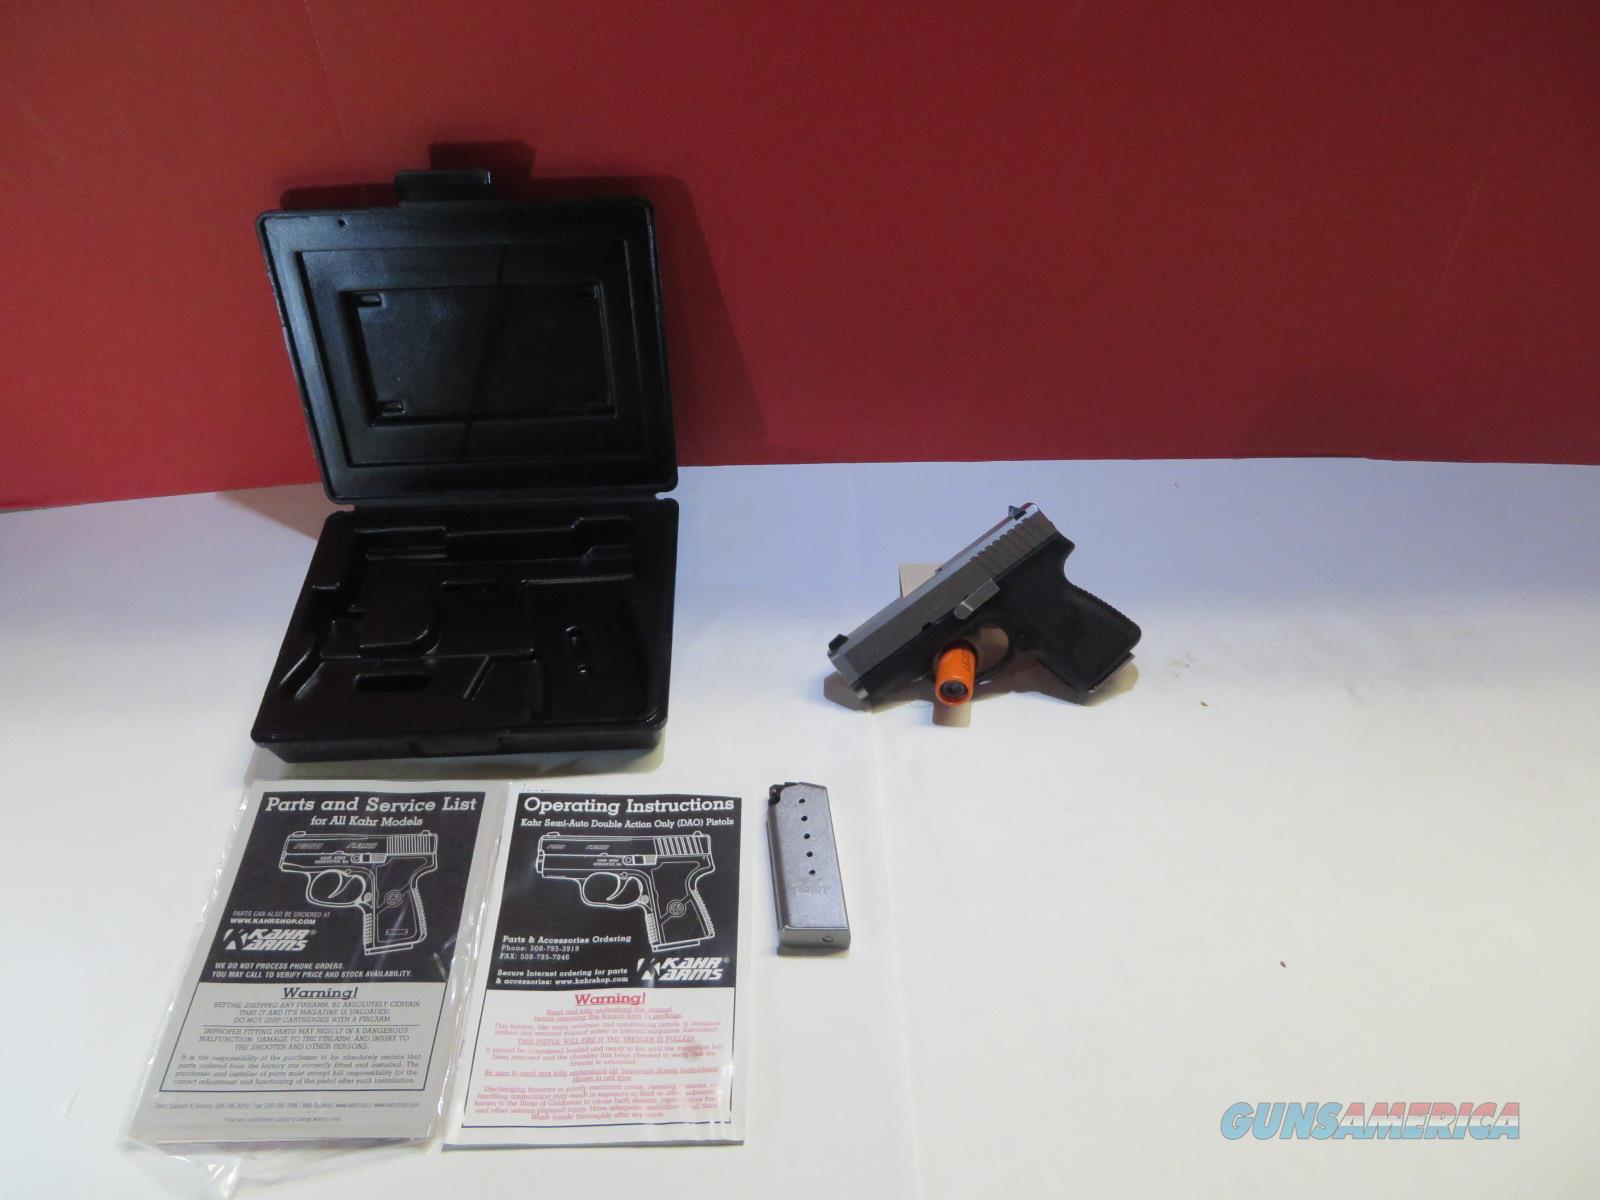 KHAR ARMS CM9 *LIKE NEW/ORIGINAL BOX/EXTRA MAGAZINE*  Guns > Pistols > Kahr Pistols